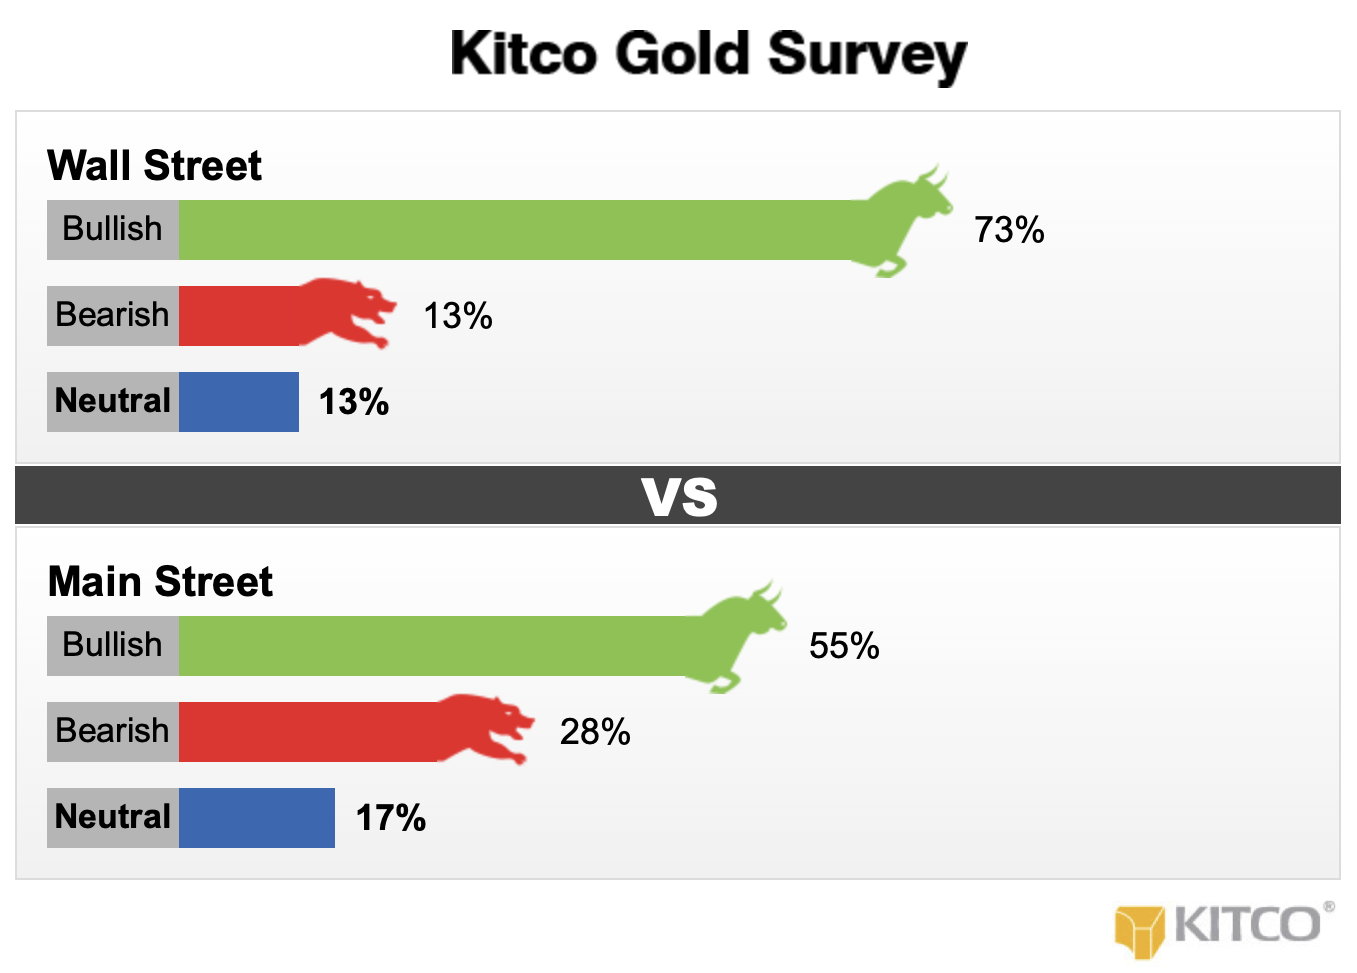 Kitco Gold Survey as of February 8th 2019